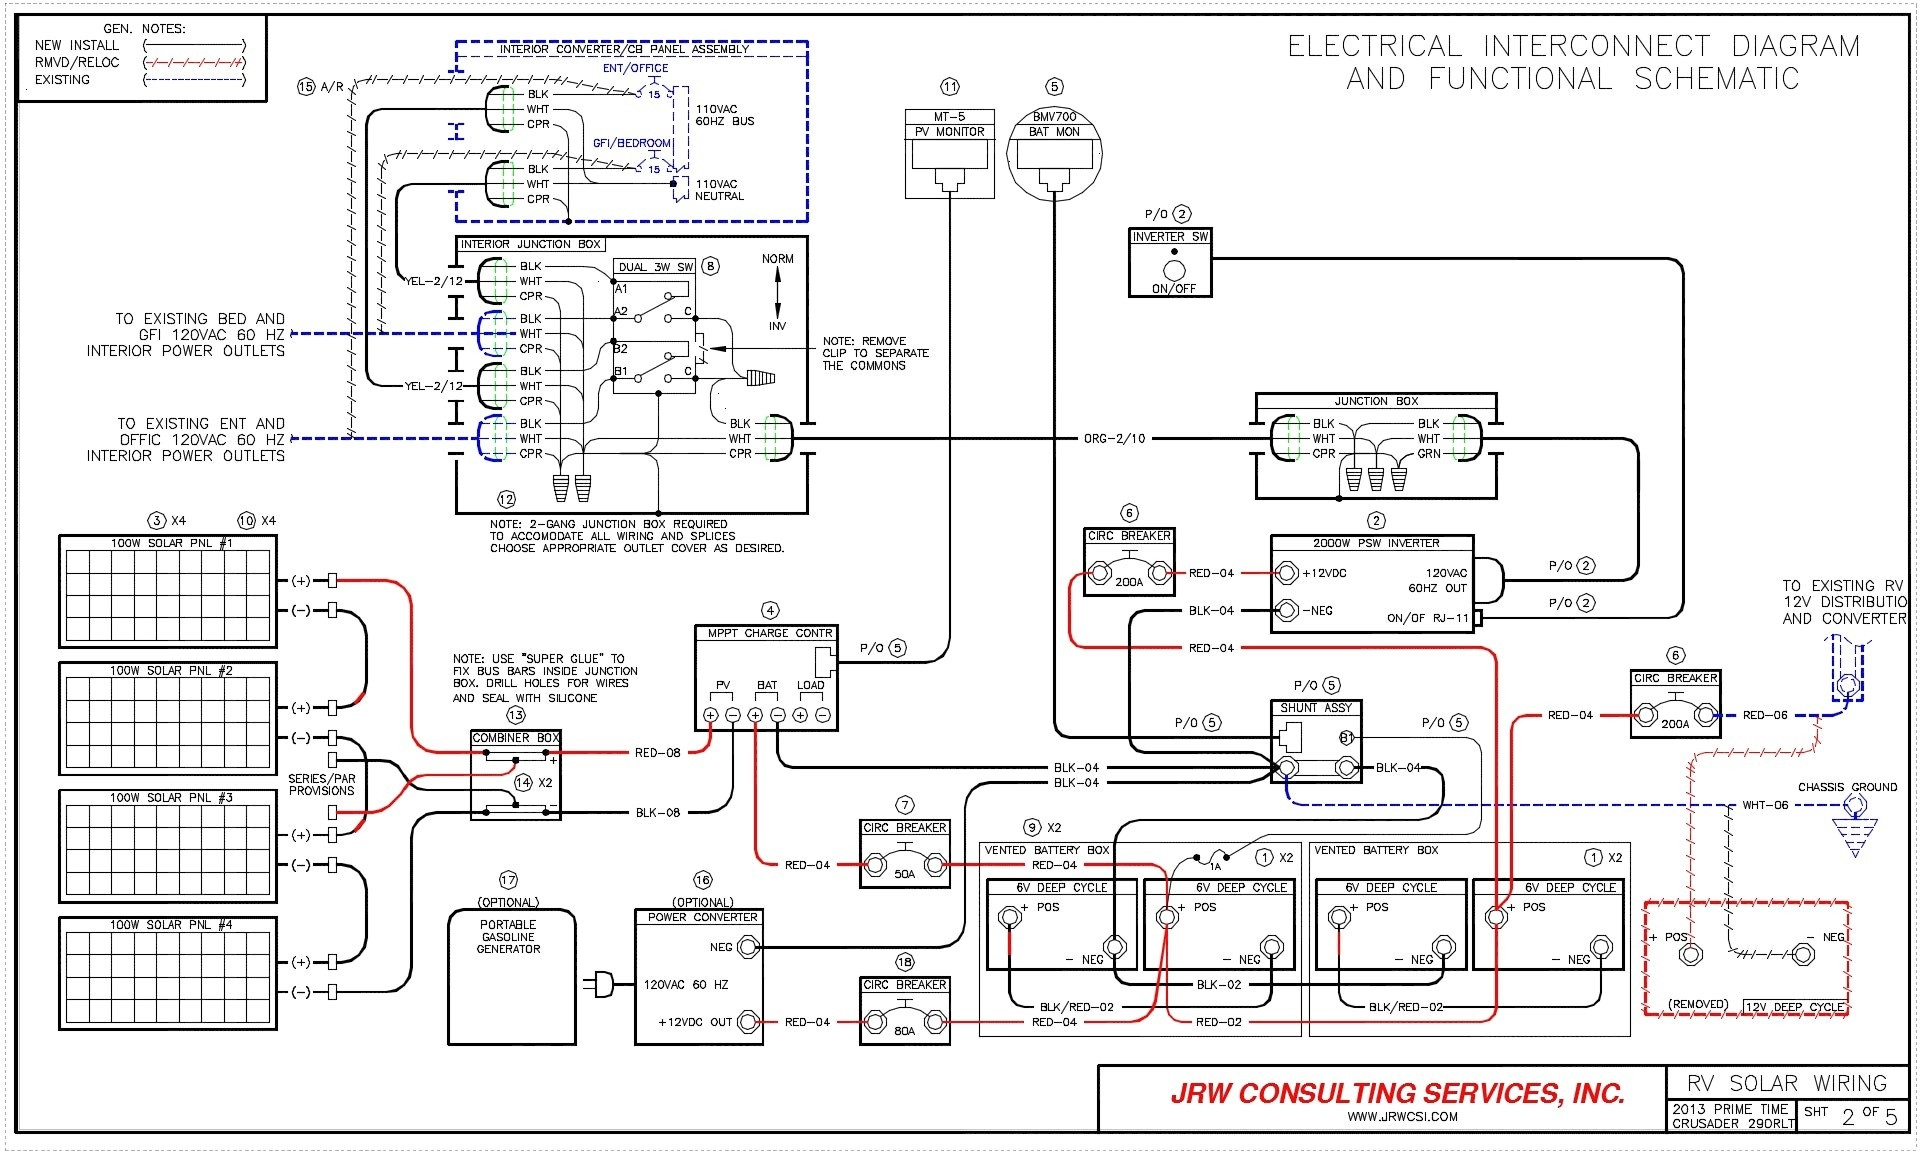 duo therm furnace wiring diagram truck lite 80800 rv air conditioner free